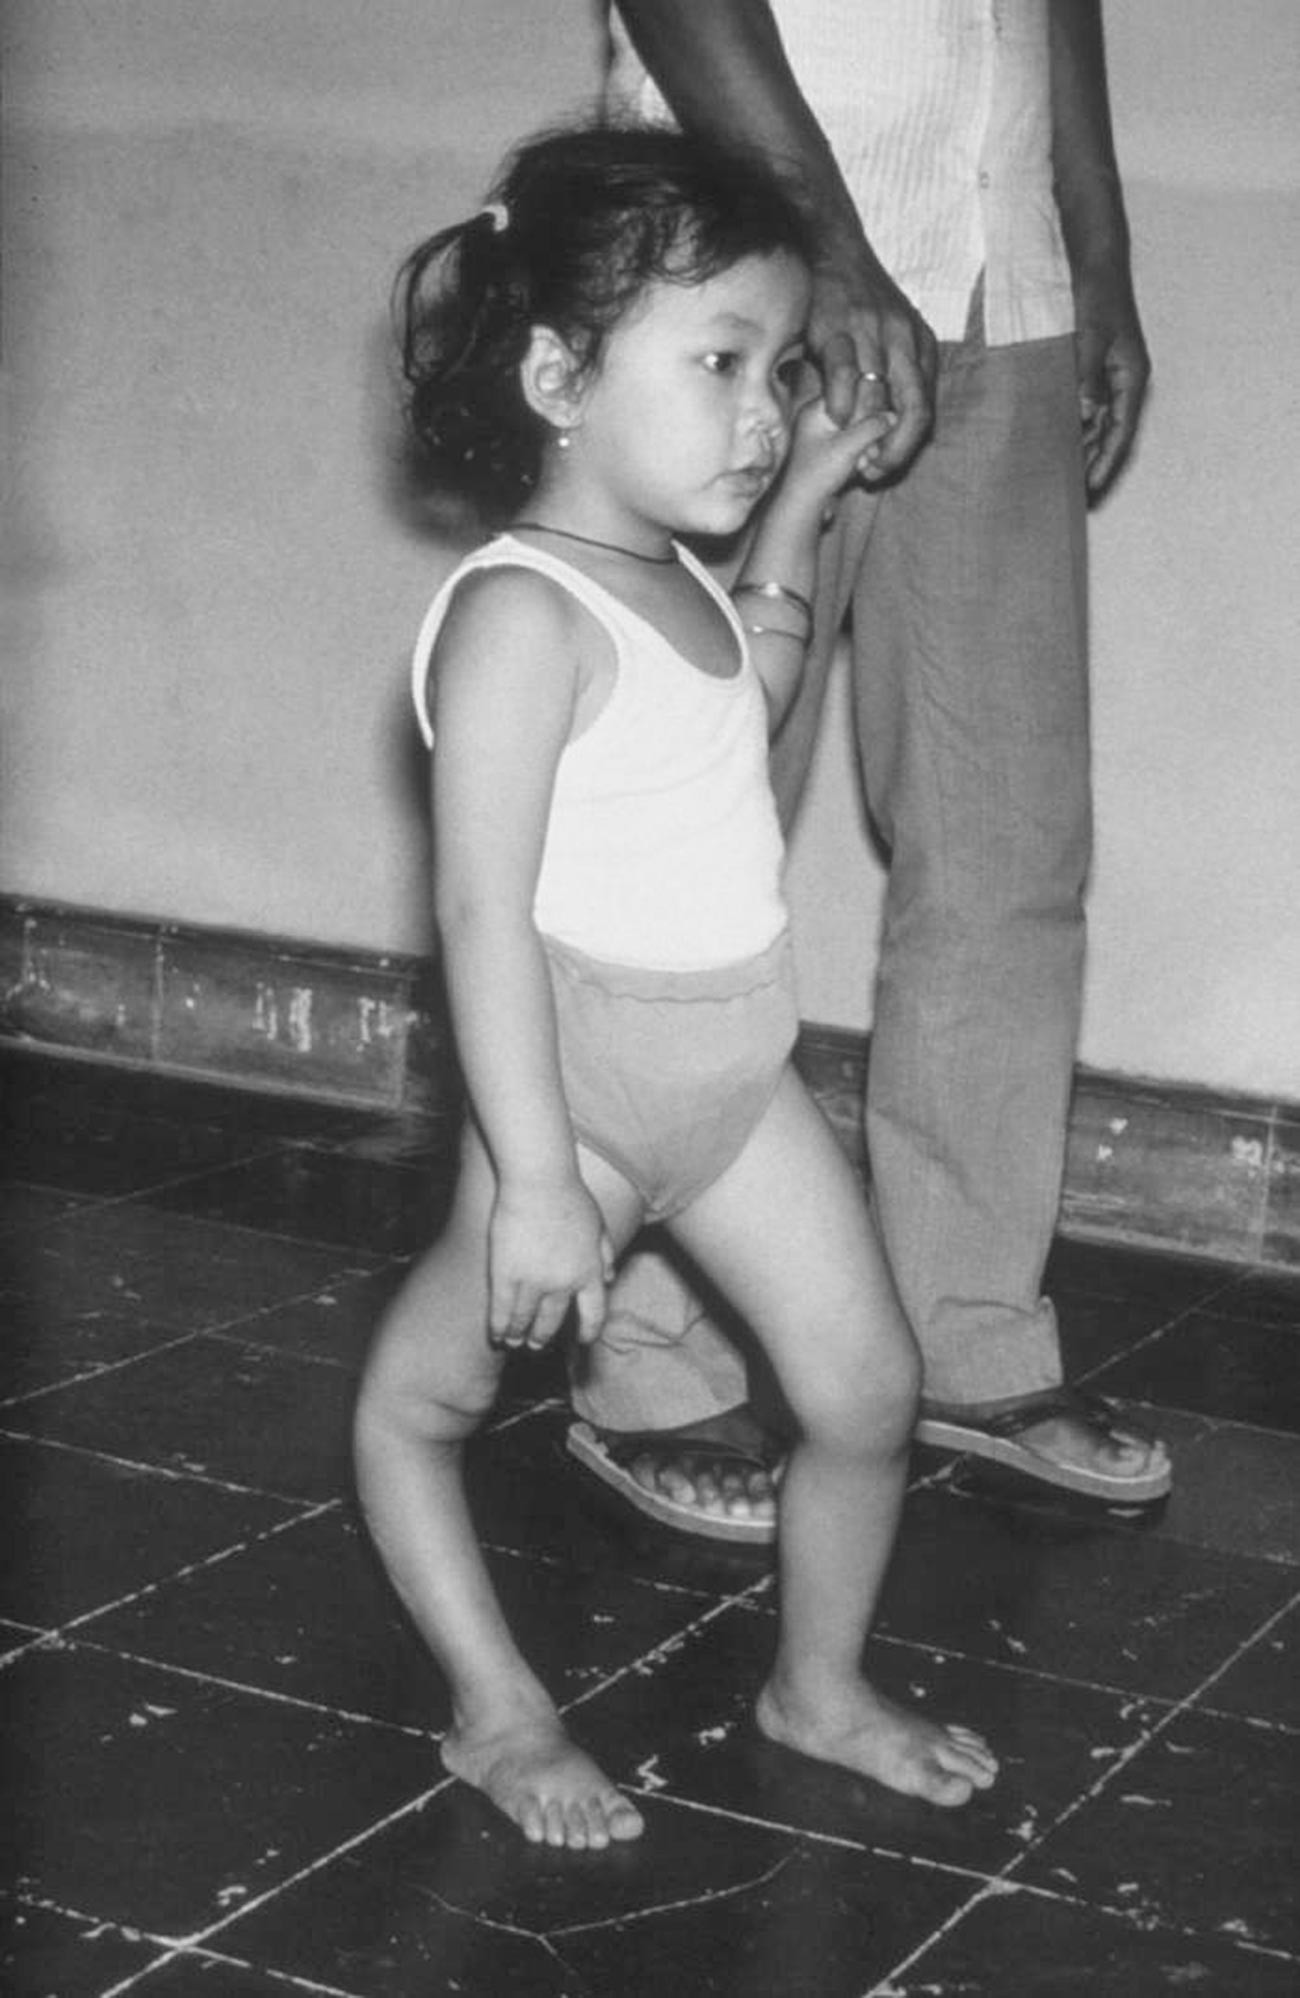 A girl with a deformity of her right leg due to polio